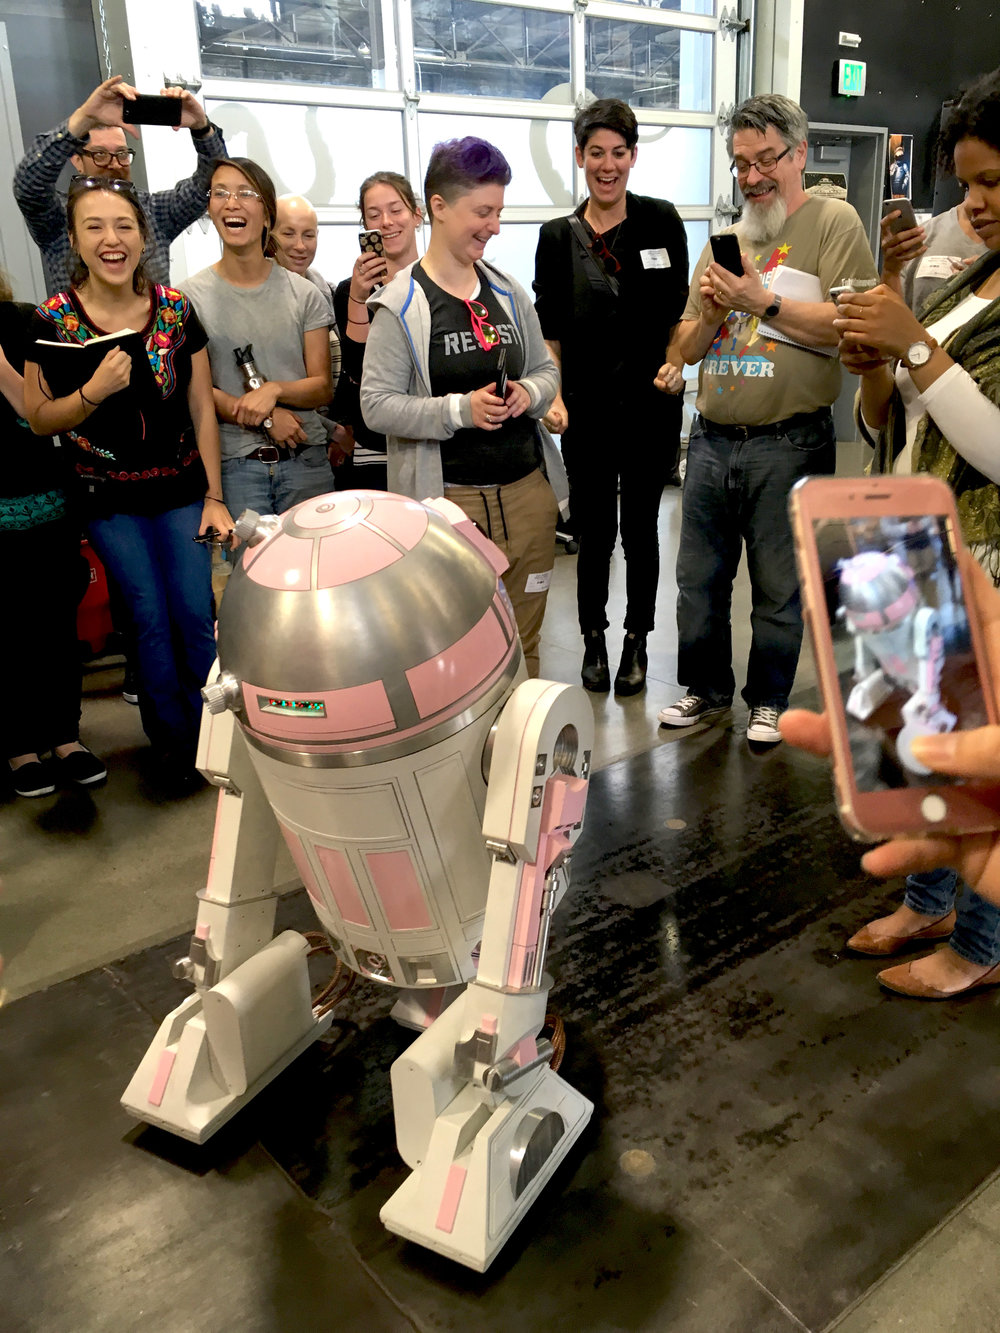 Meeting R2D2's GF at Autodesk Pier 9